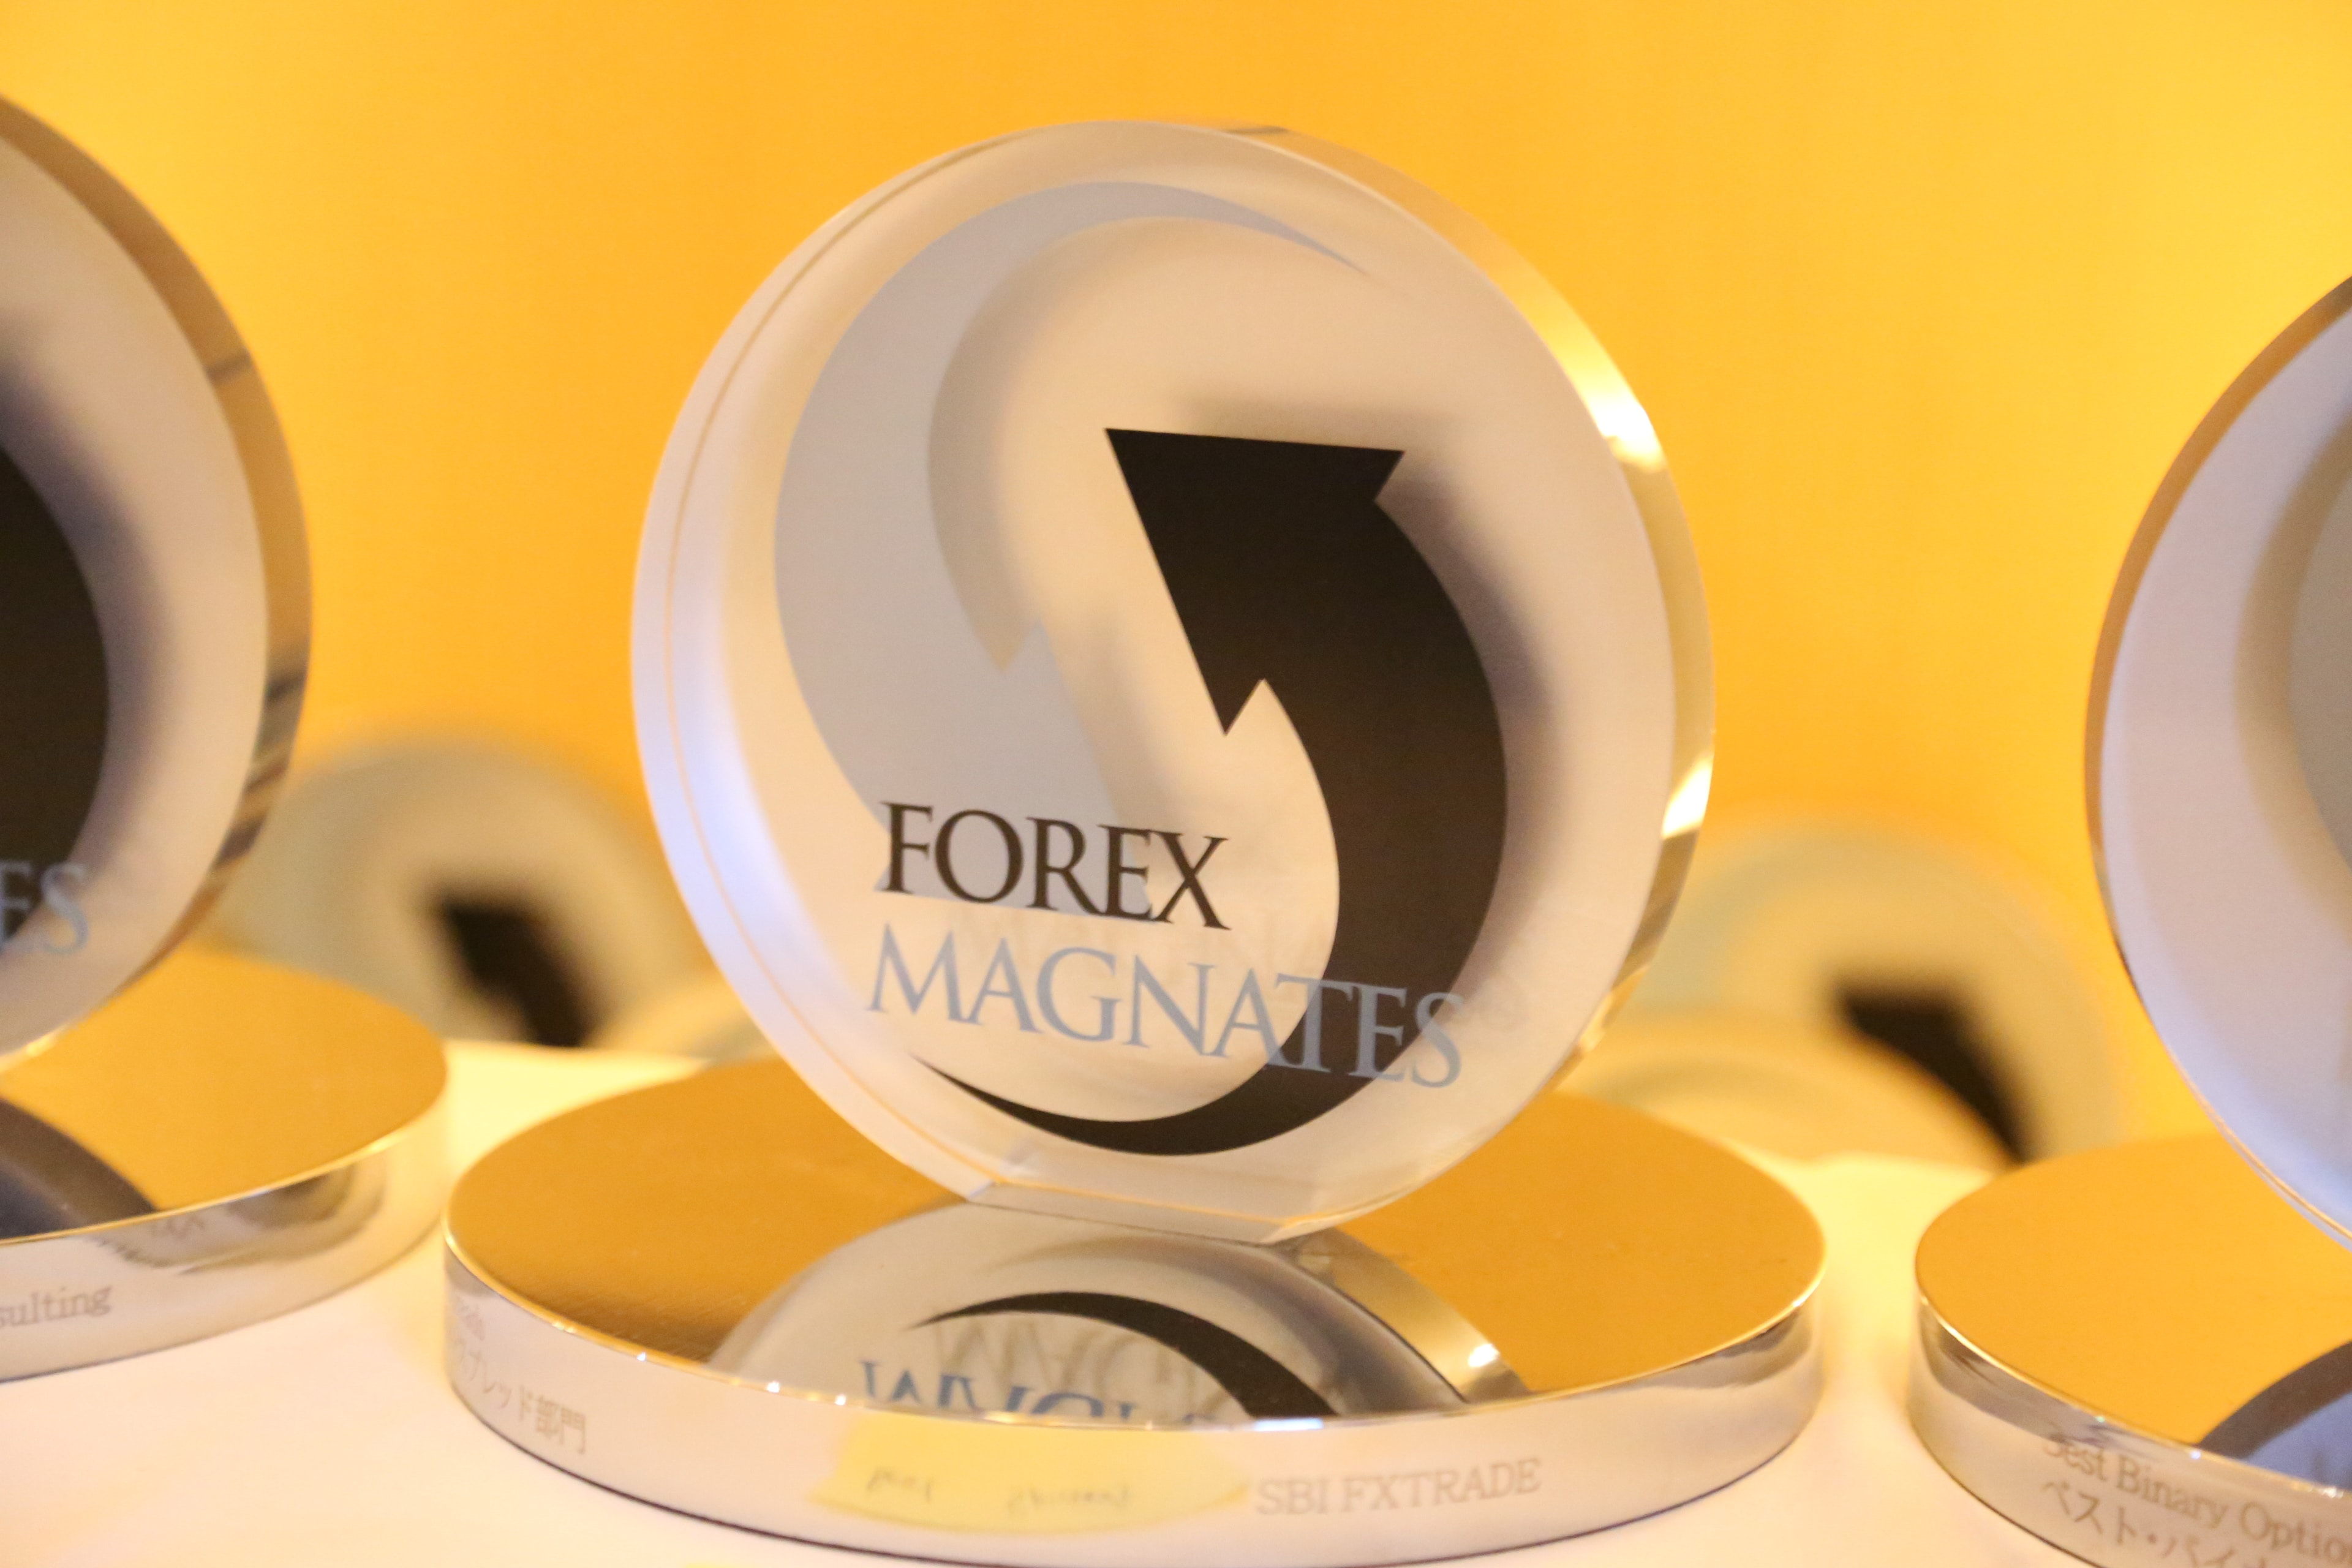 Who Will Get the CEOs' Spotlight on Forex Magnates' Innovation Stage?